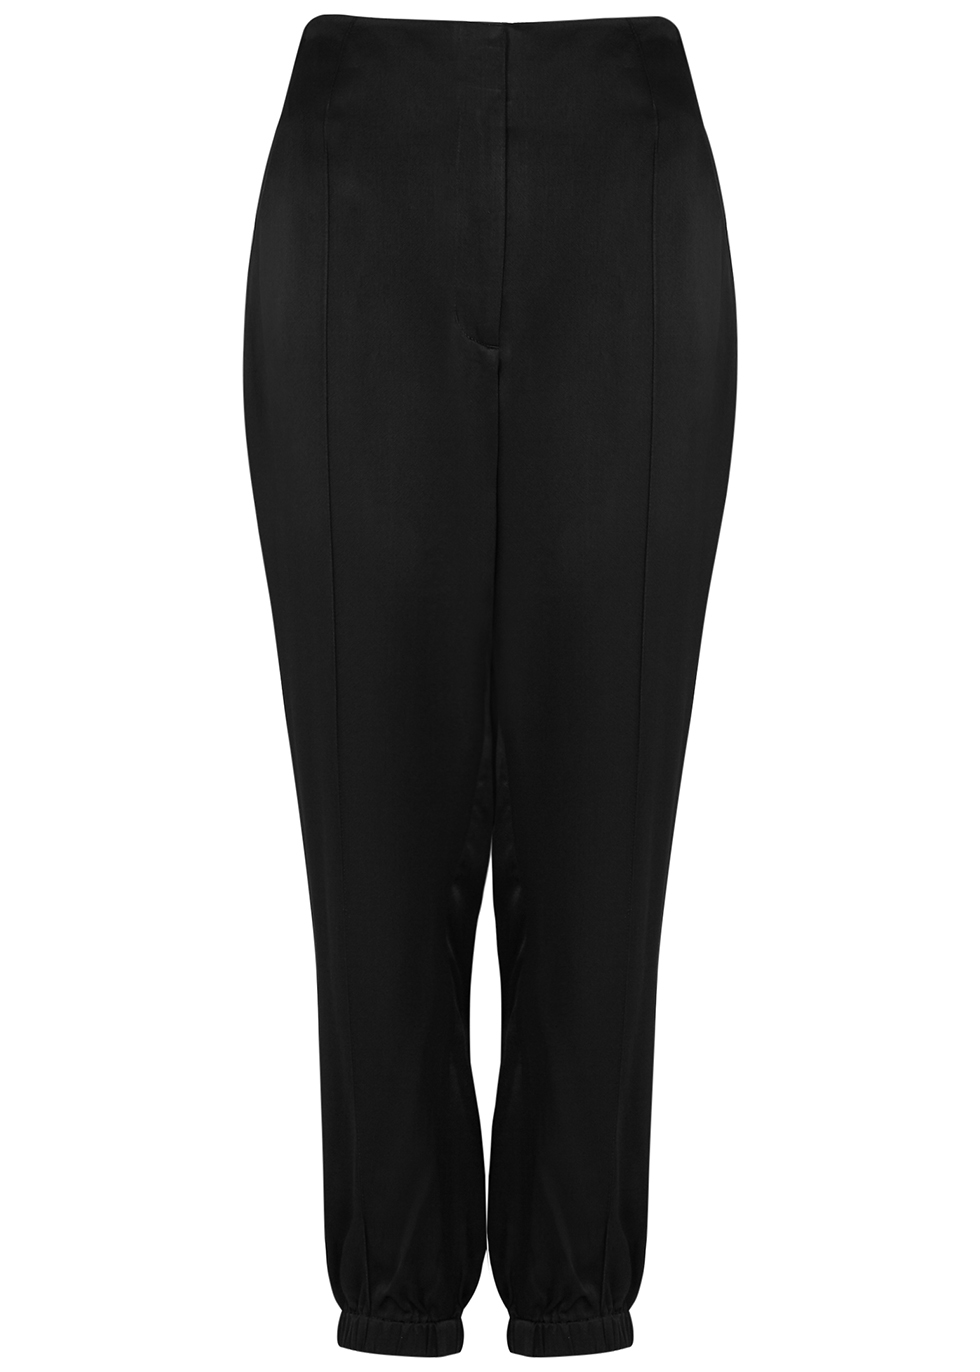 Black satin trousers